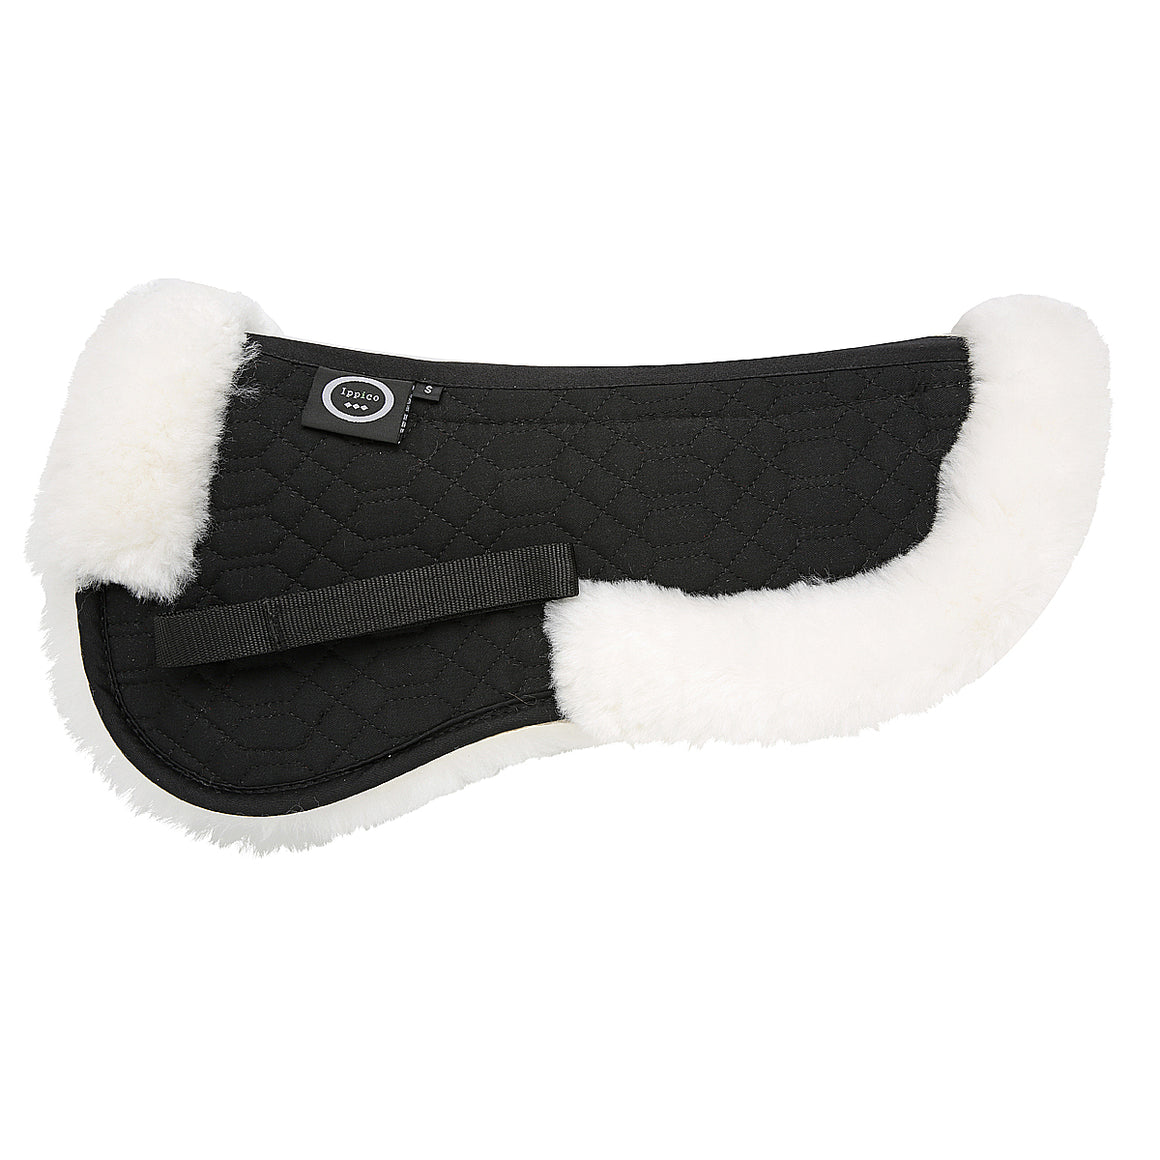 Lucci | Sheepskin Numnah | Black with White Fleece